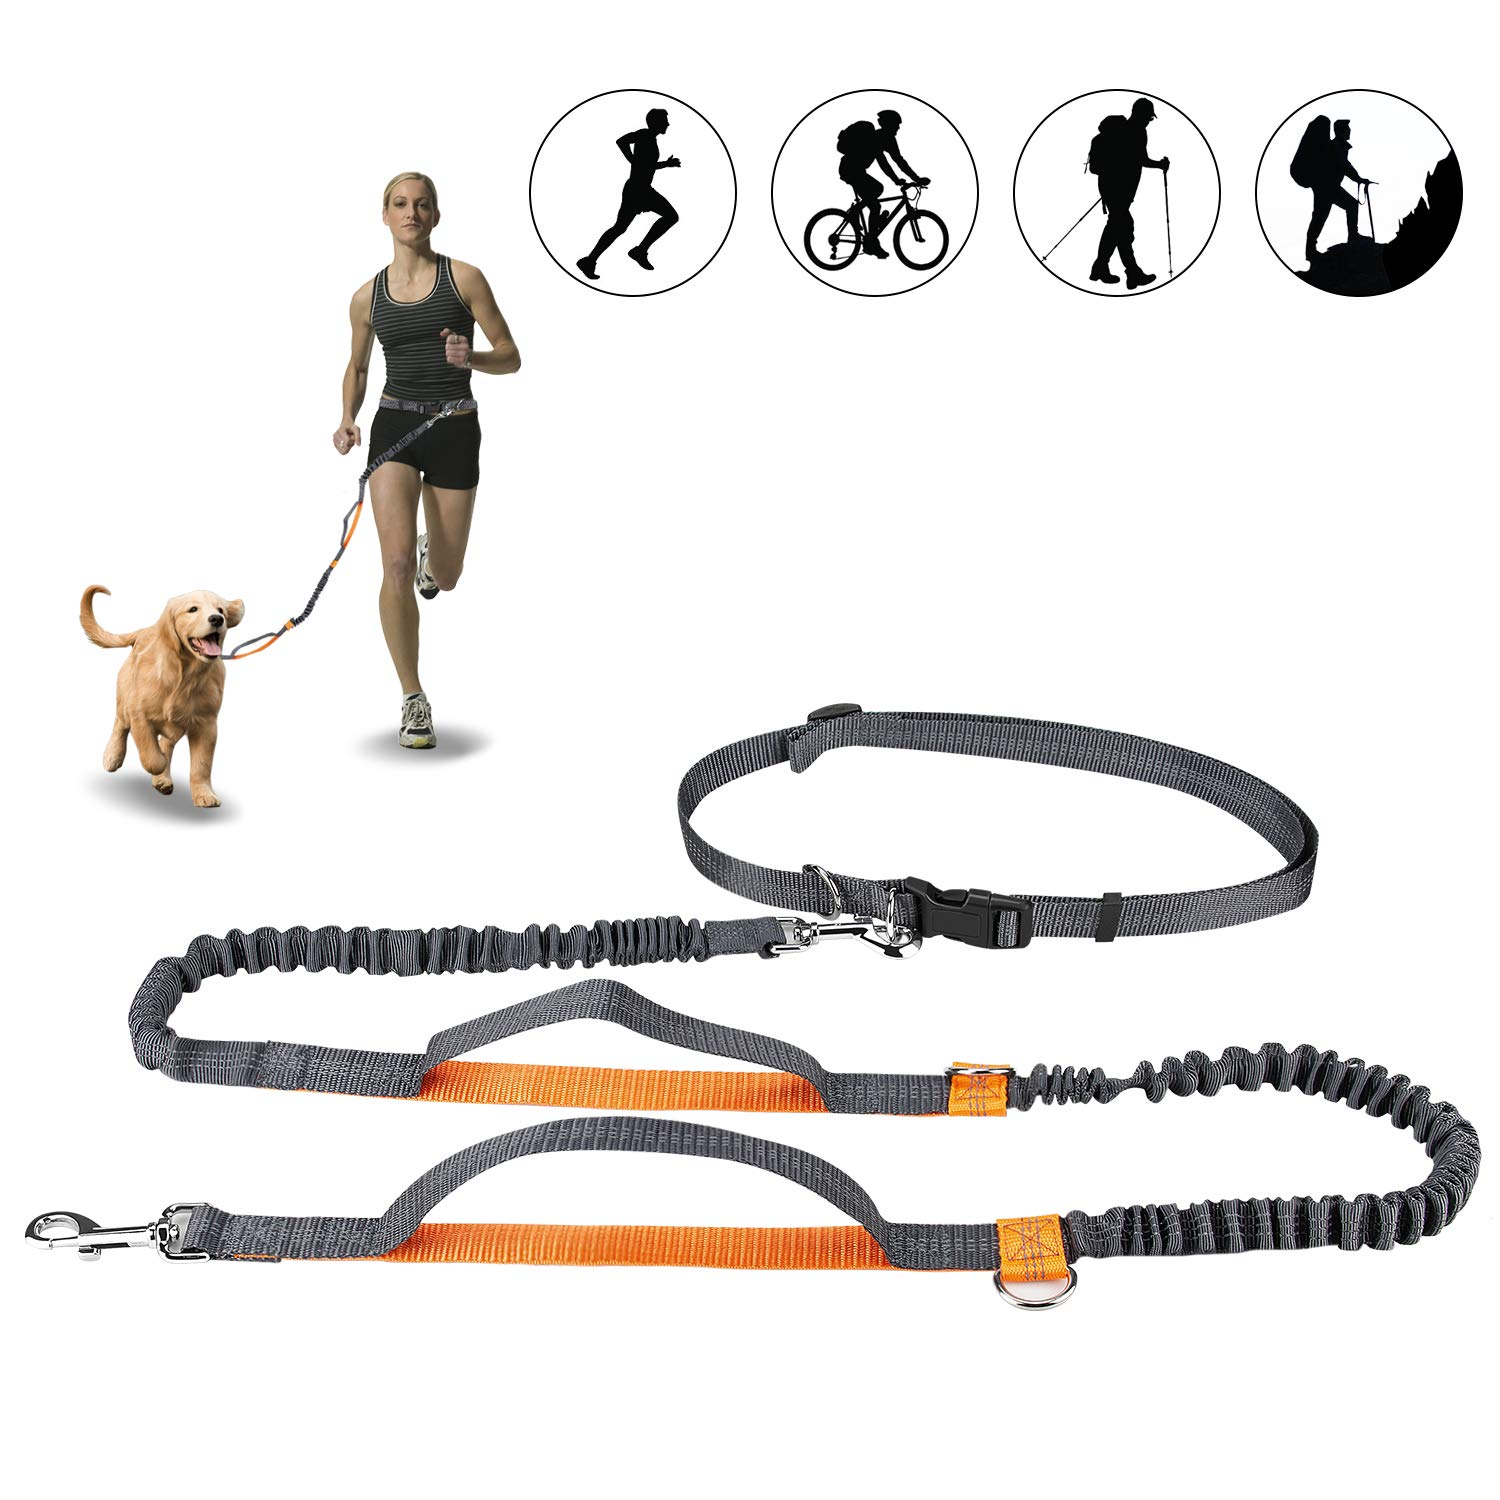 Winkeyes Hands Free Retractable Dog Leash 5ft-8ft with Dual Bungees for Puppy, Small & Medium Dogs 110Ibs, Adjustable Waist Belt 27''-47'', Reflective Stitching Leash for Running Walking Hiking